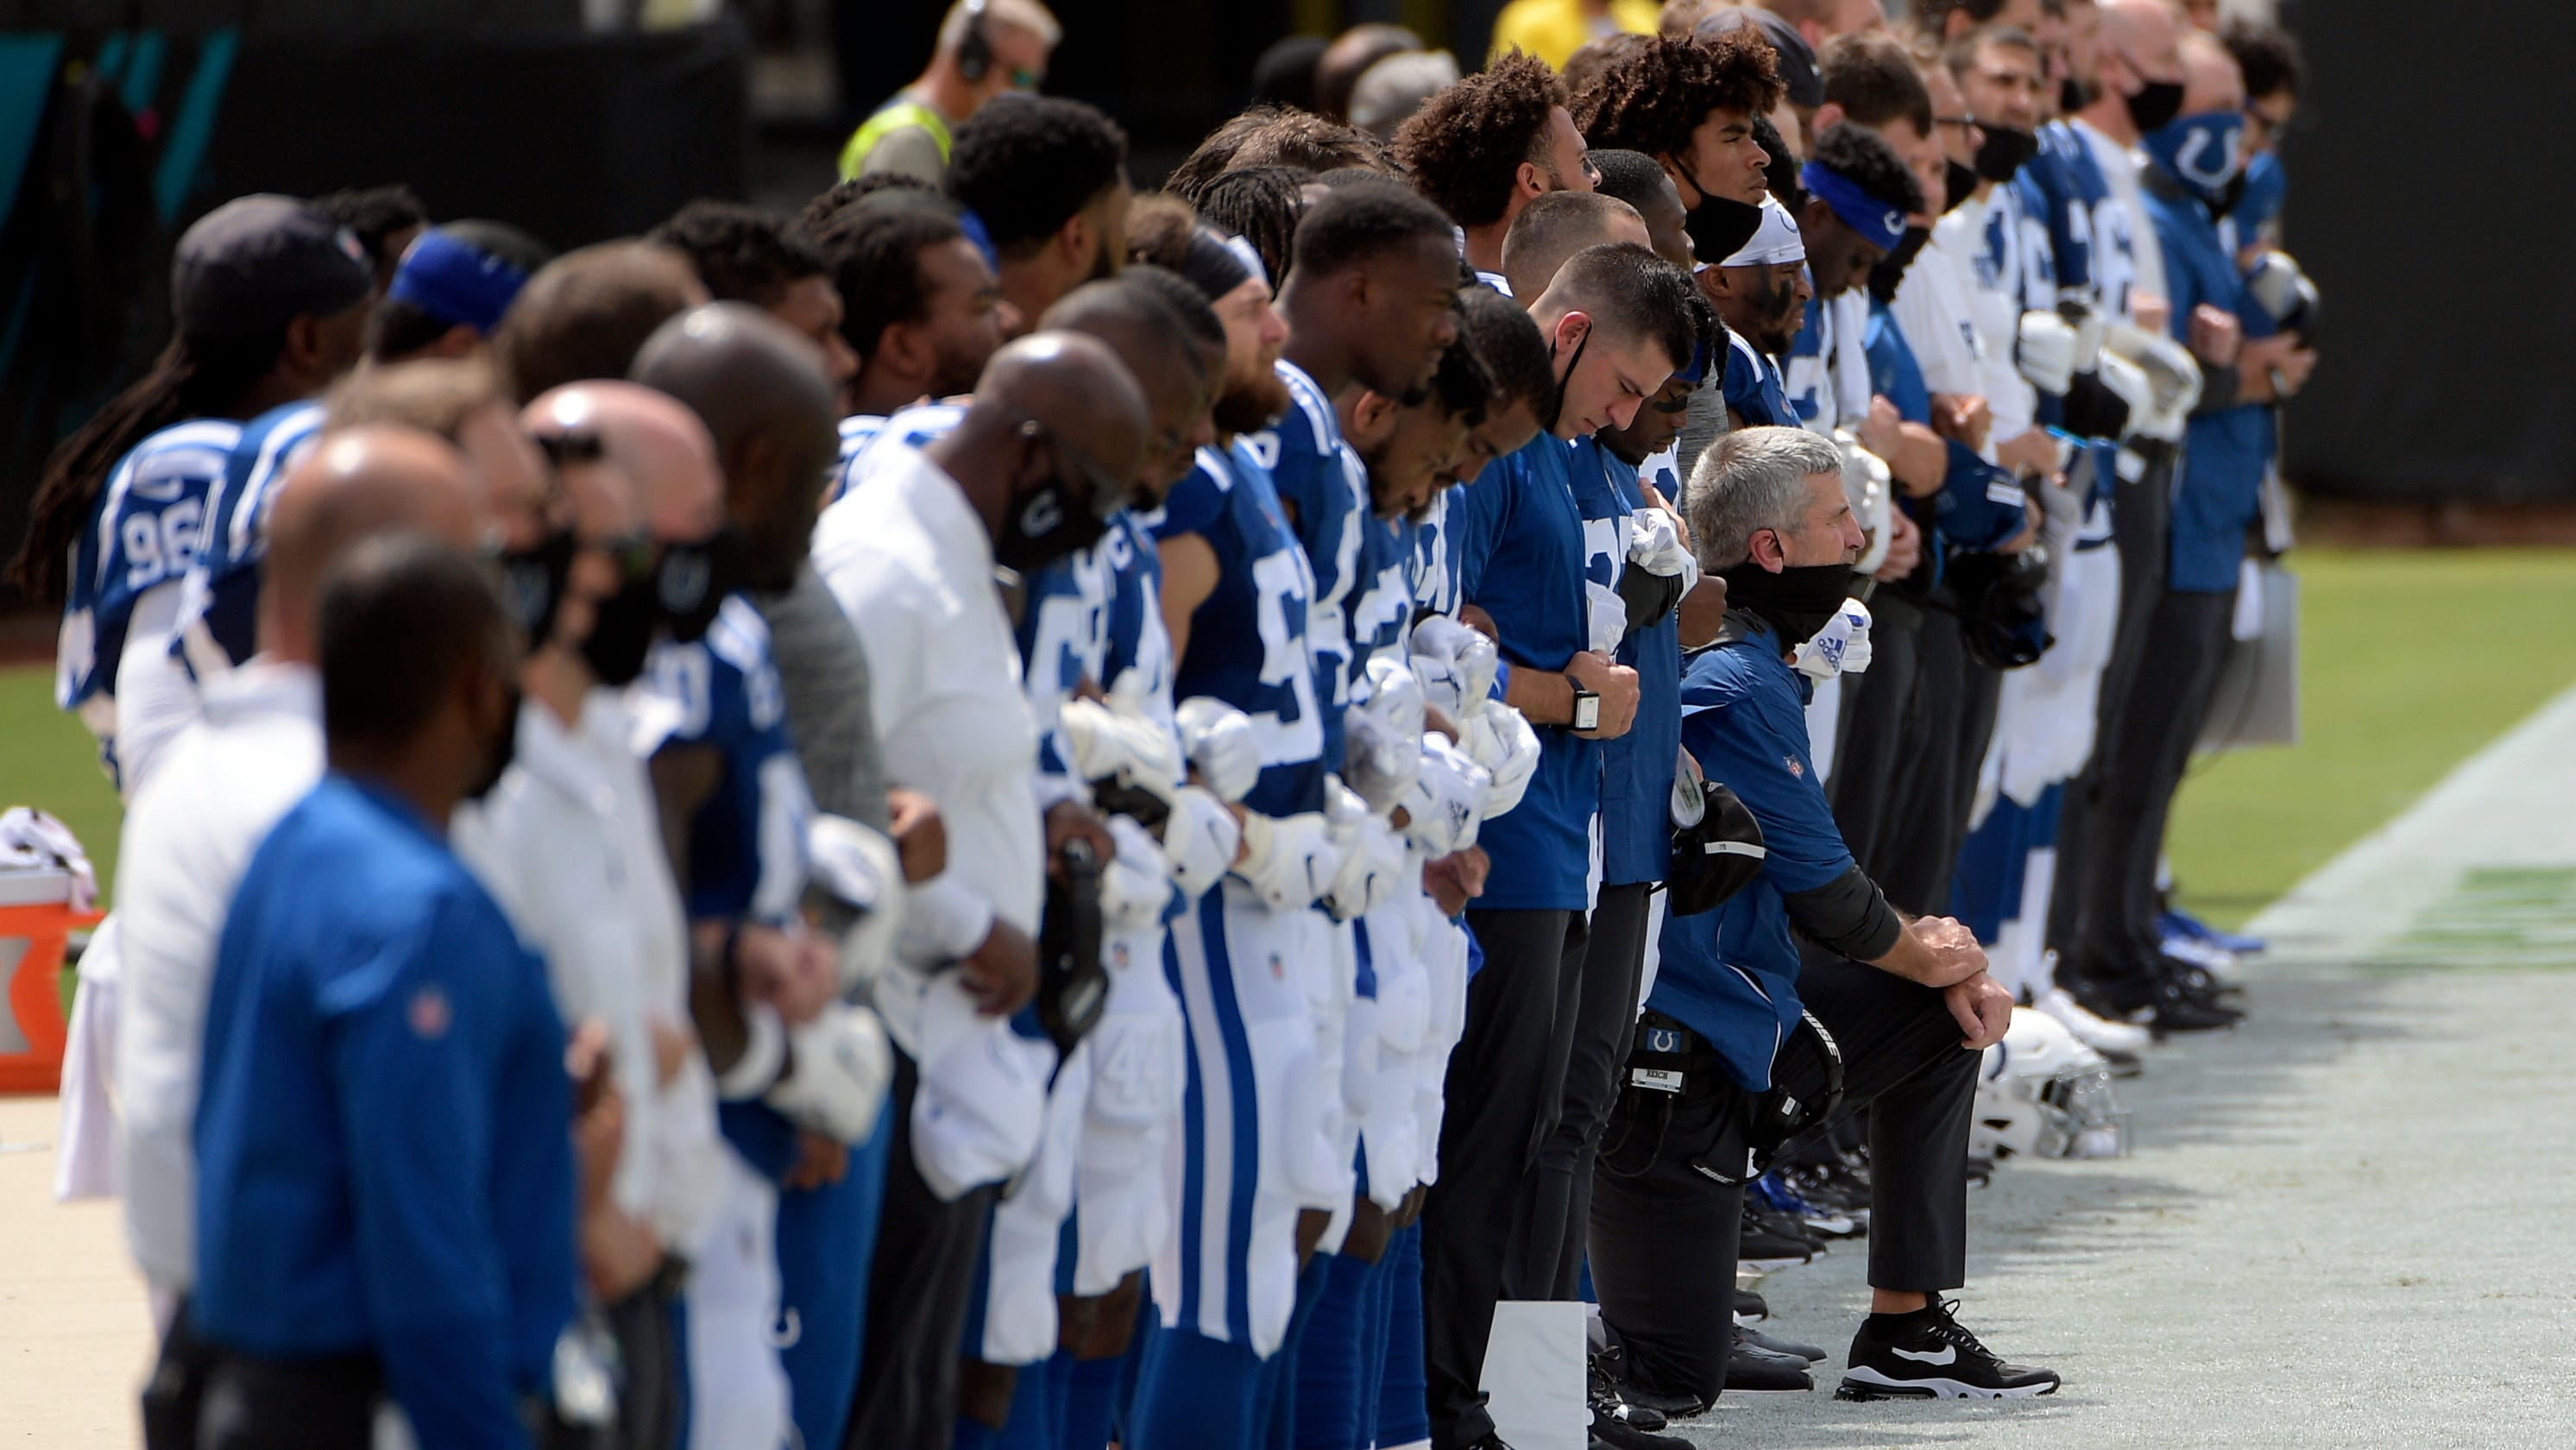 Colts coach Frank Reich explains why he kneeled during national anthem